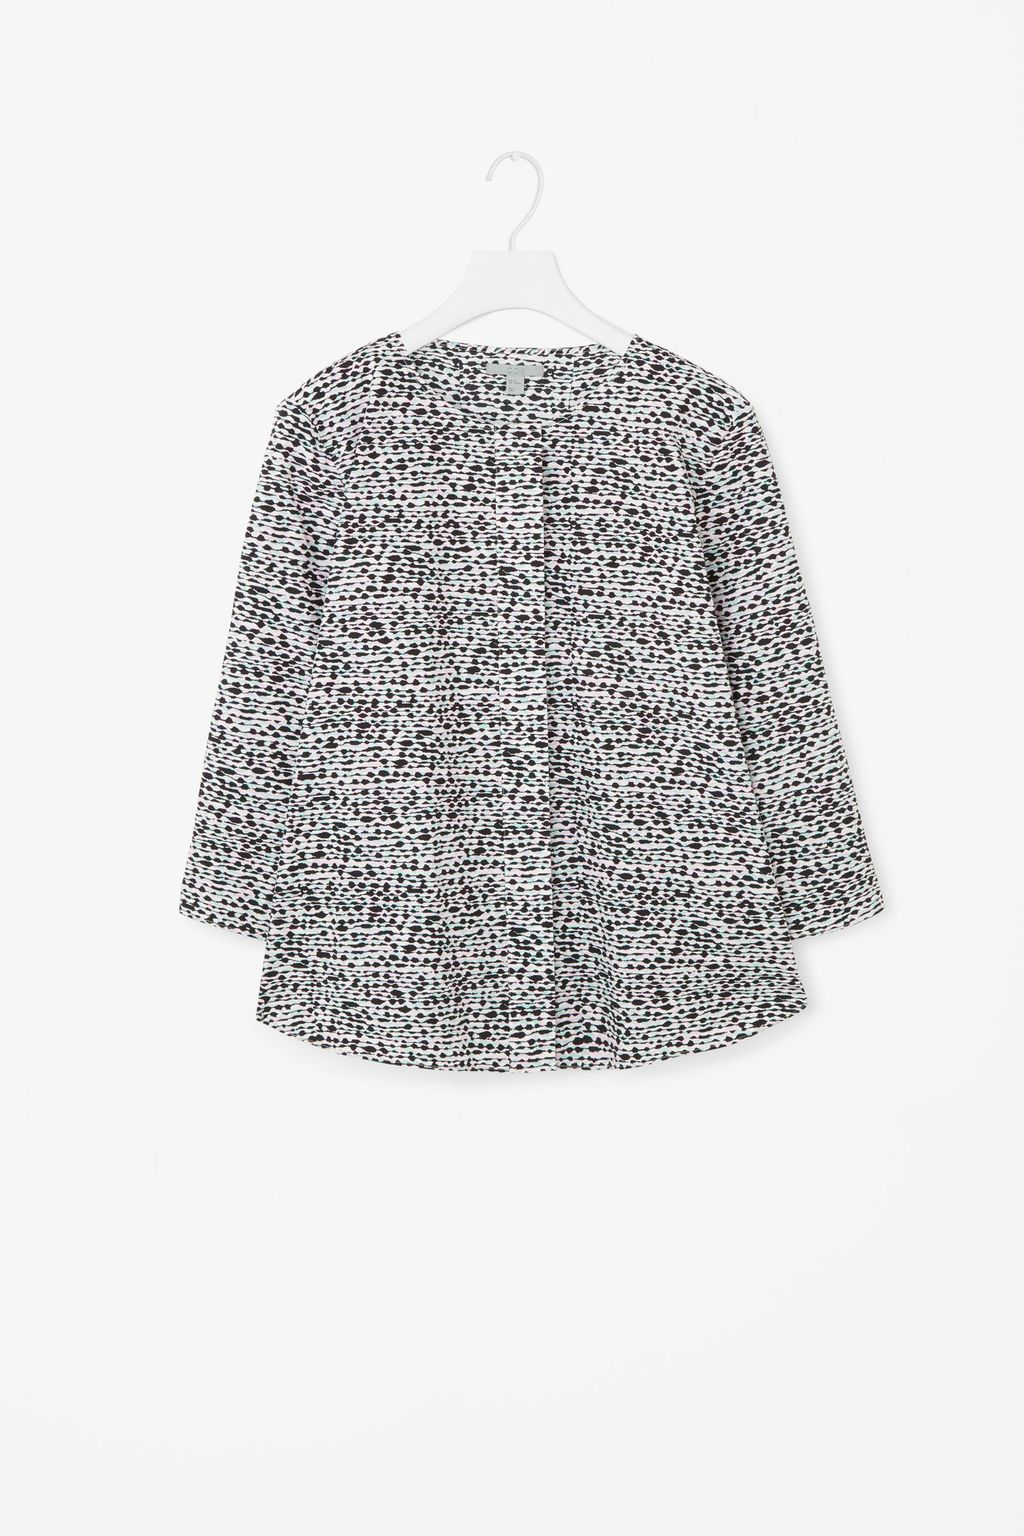 Multi Colour Print Top - neckline: round neck; secondary colour: white; predominant colour: black; occasions: casual; length: standard; style: top; fibres: cotton - 100%; fit: body skimming; sleeve length: 3/4 length; sleeve style: standard; trends: monochrome; texture group: cotton feel fabrics; pattern type: fabric; pattern size: standard; pattern: patterned/print; season: s/s 2016; wardrobe: highlight